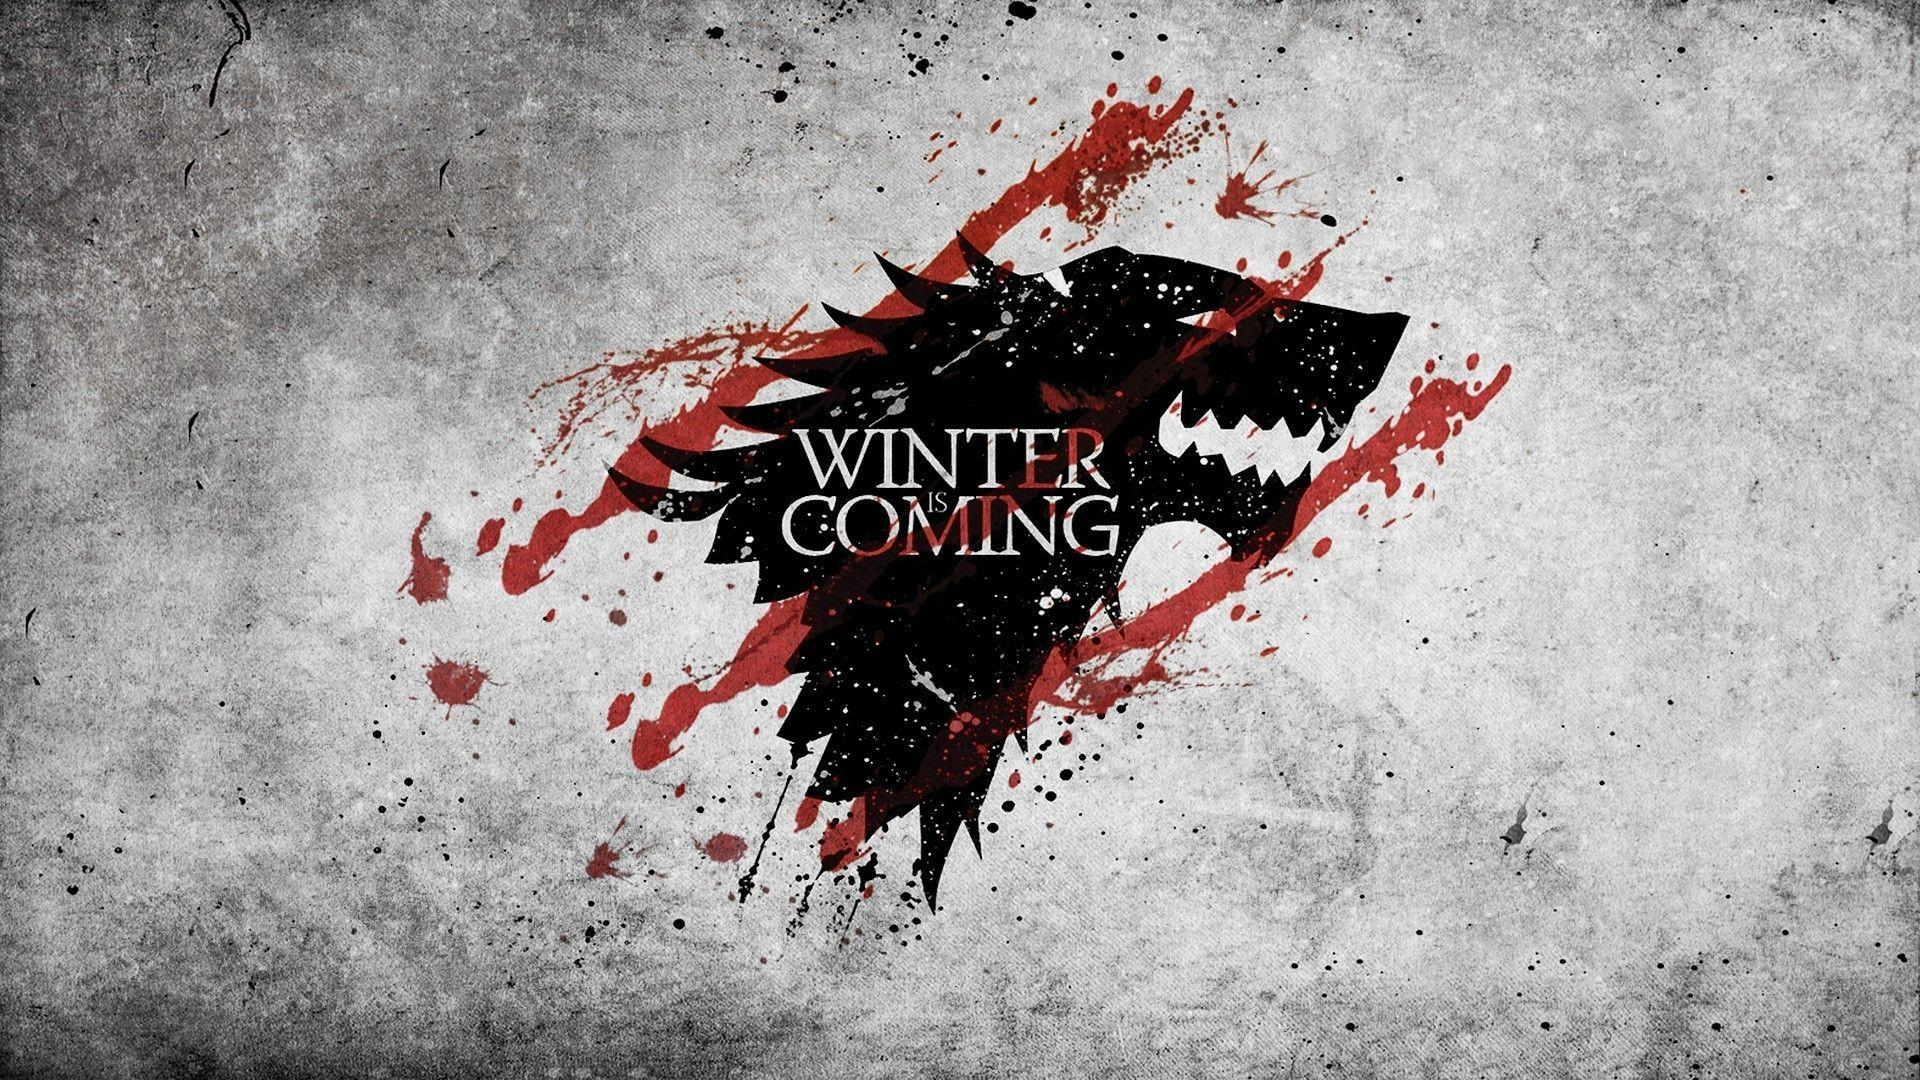 Game of Thrones Wallpaper, Winter is coming stark wallpapers